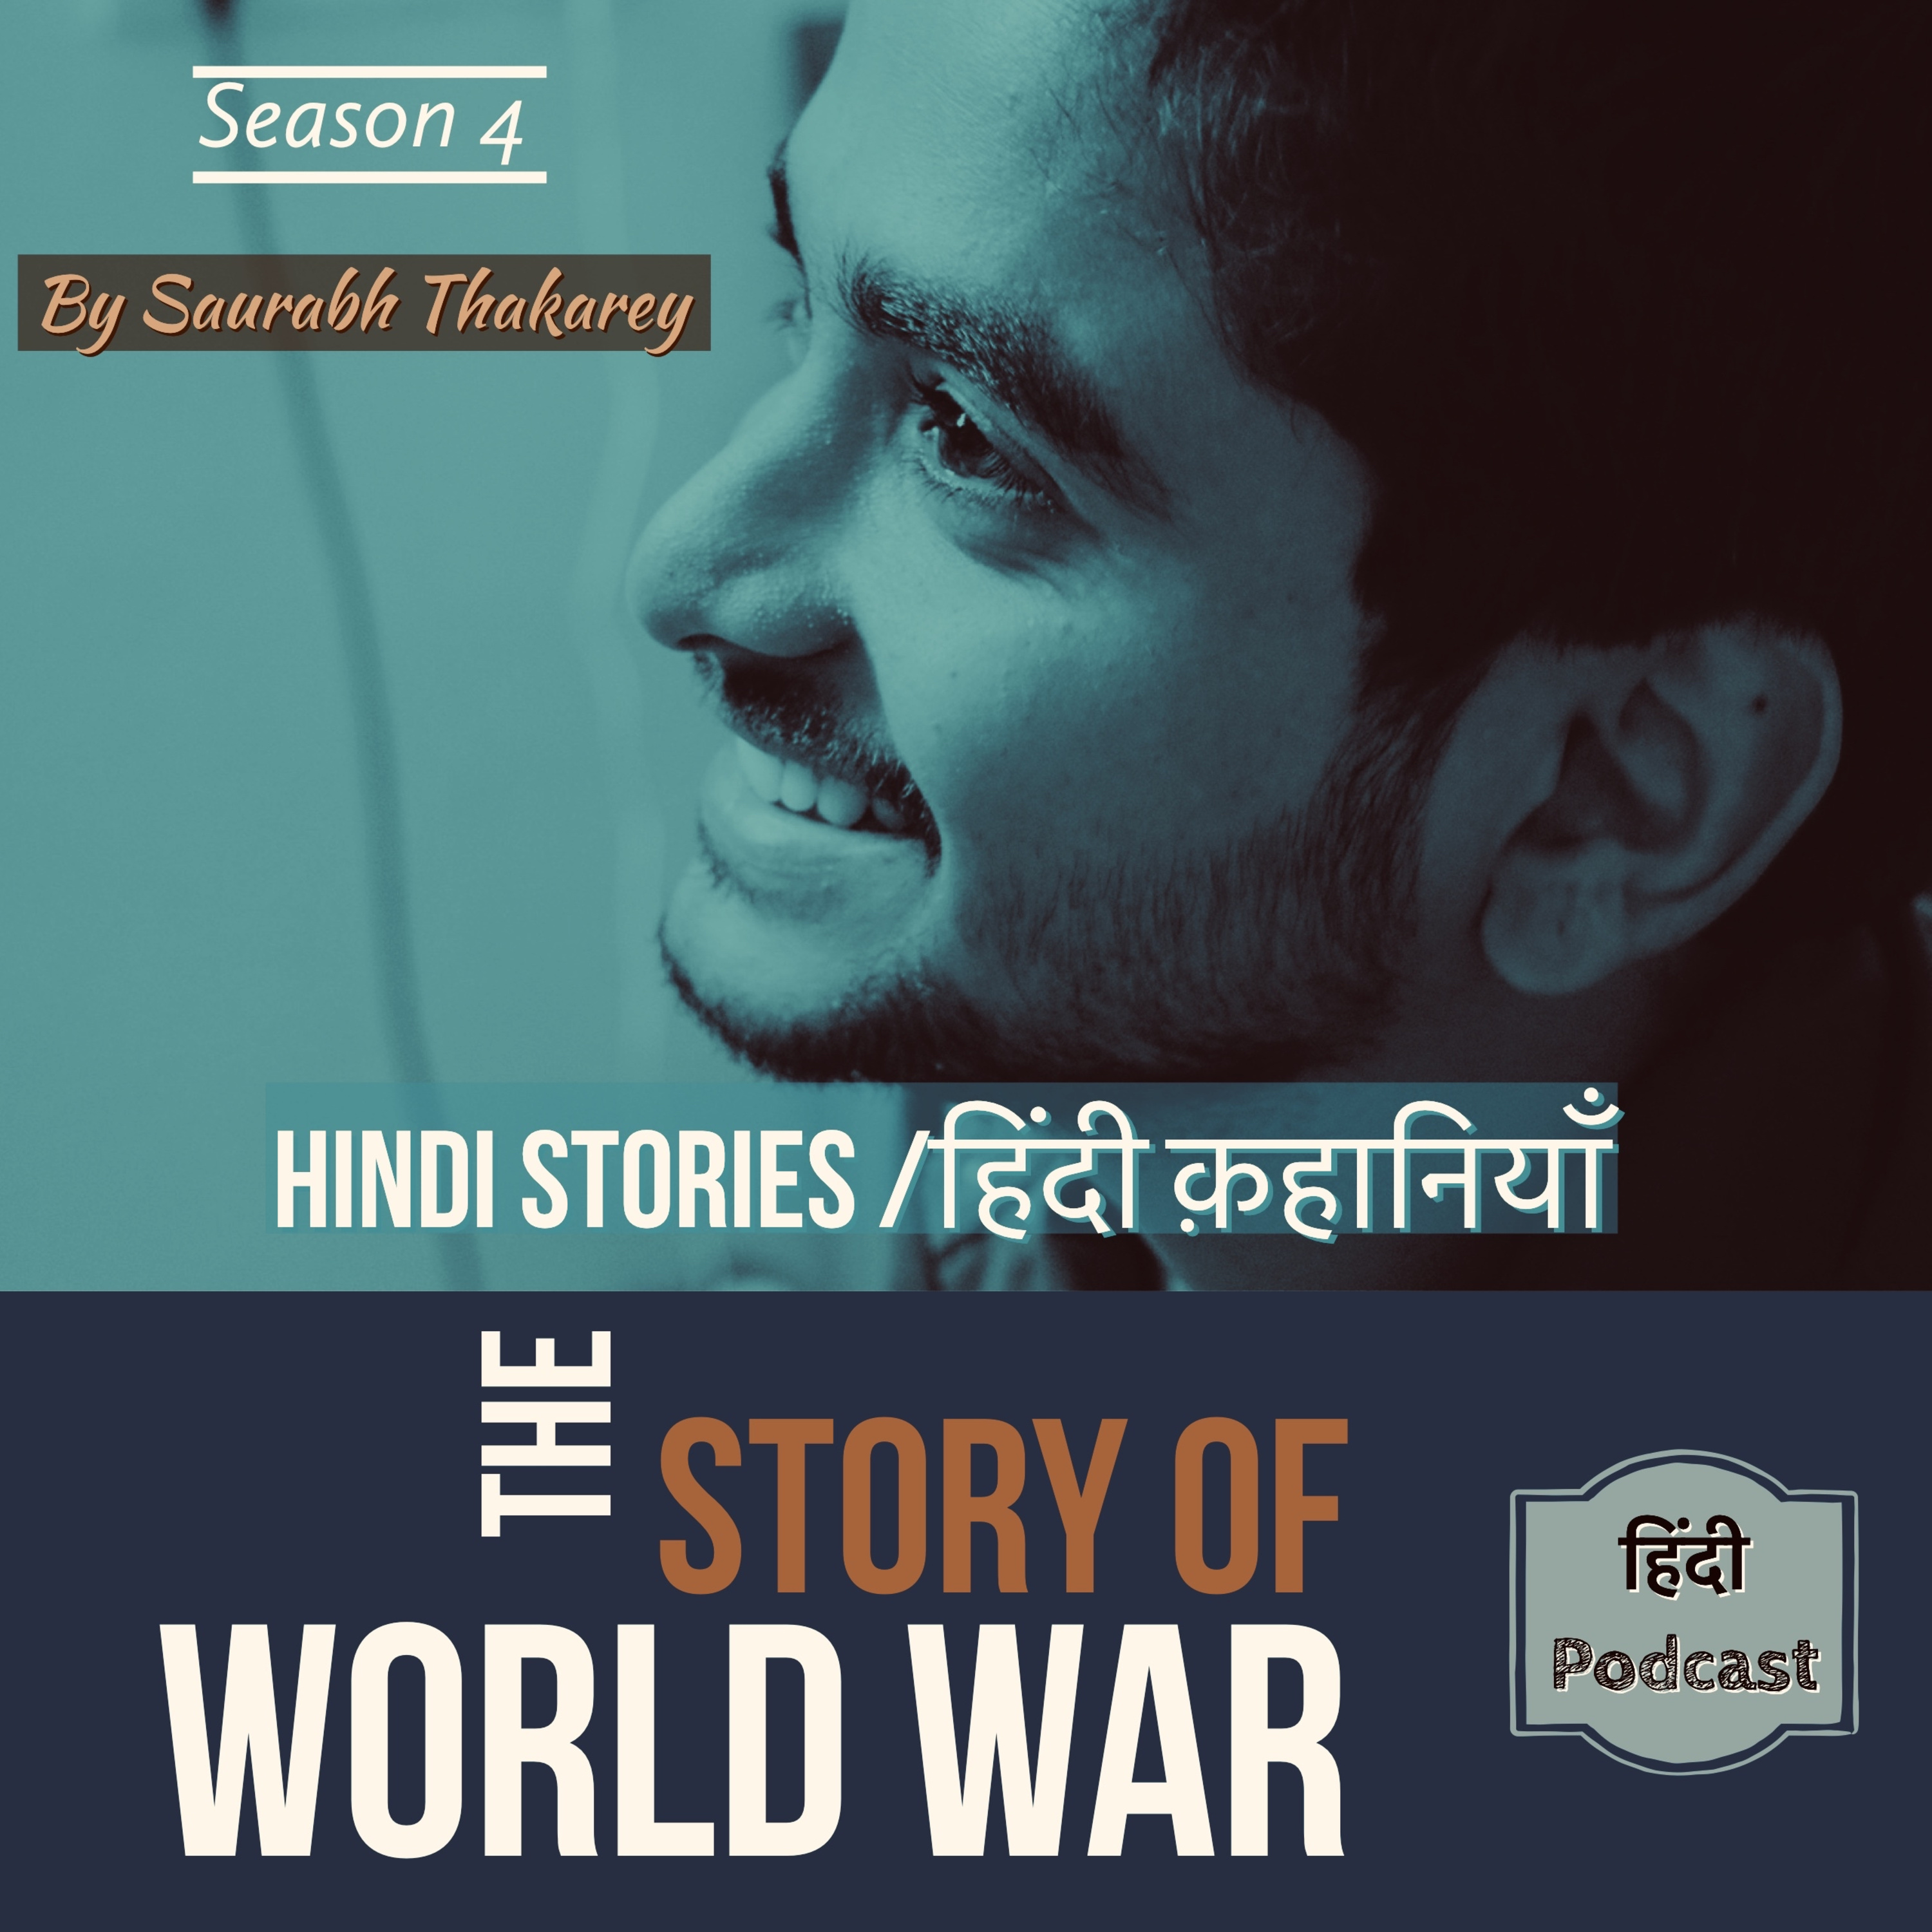 #26 WORLD WAR | Ep 5. Beginning of War |Trench warfare | विश्व युद्ध १